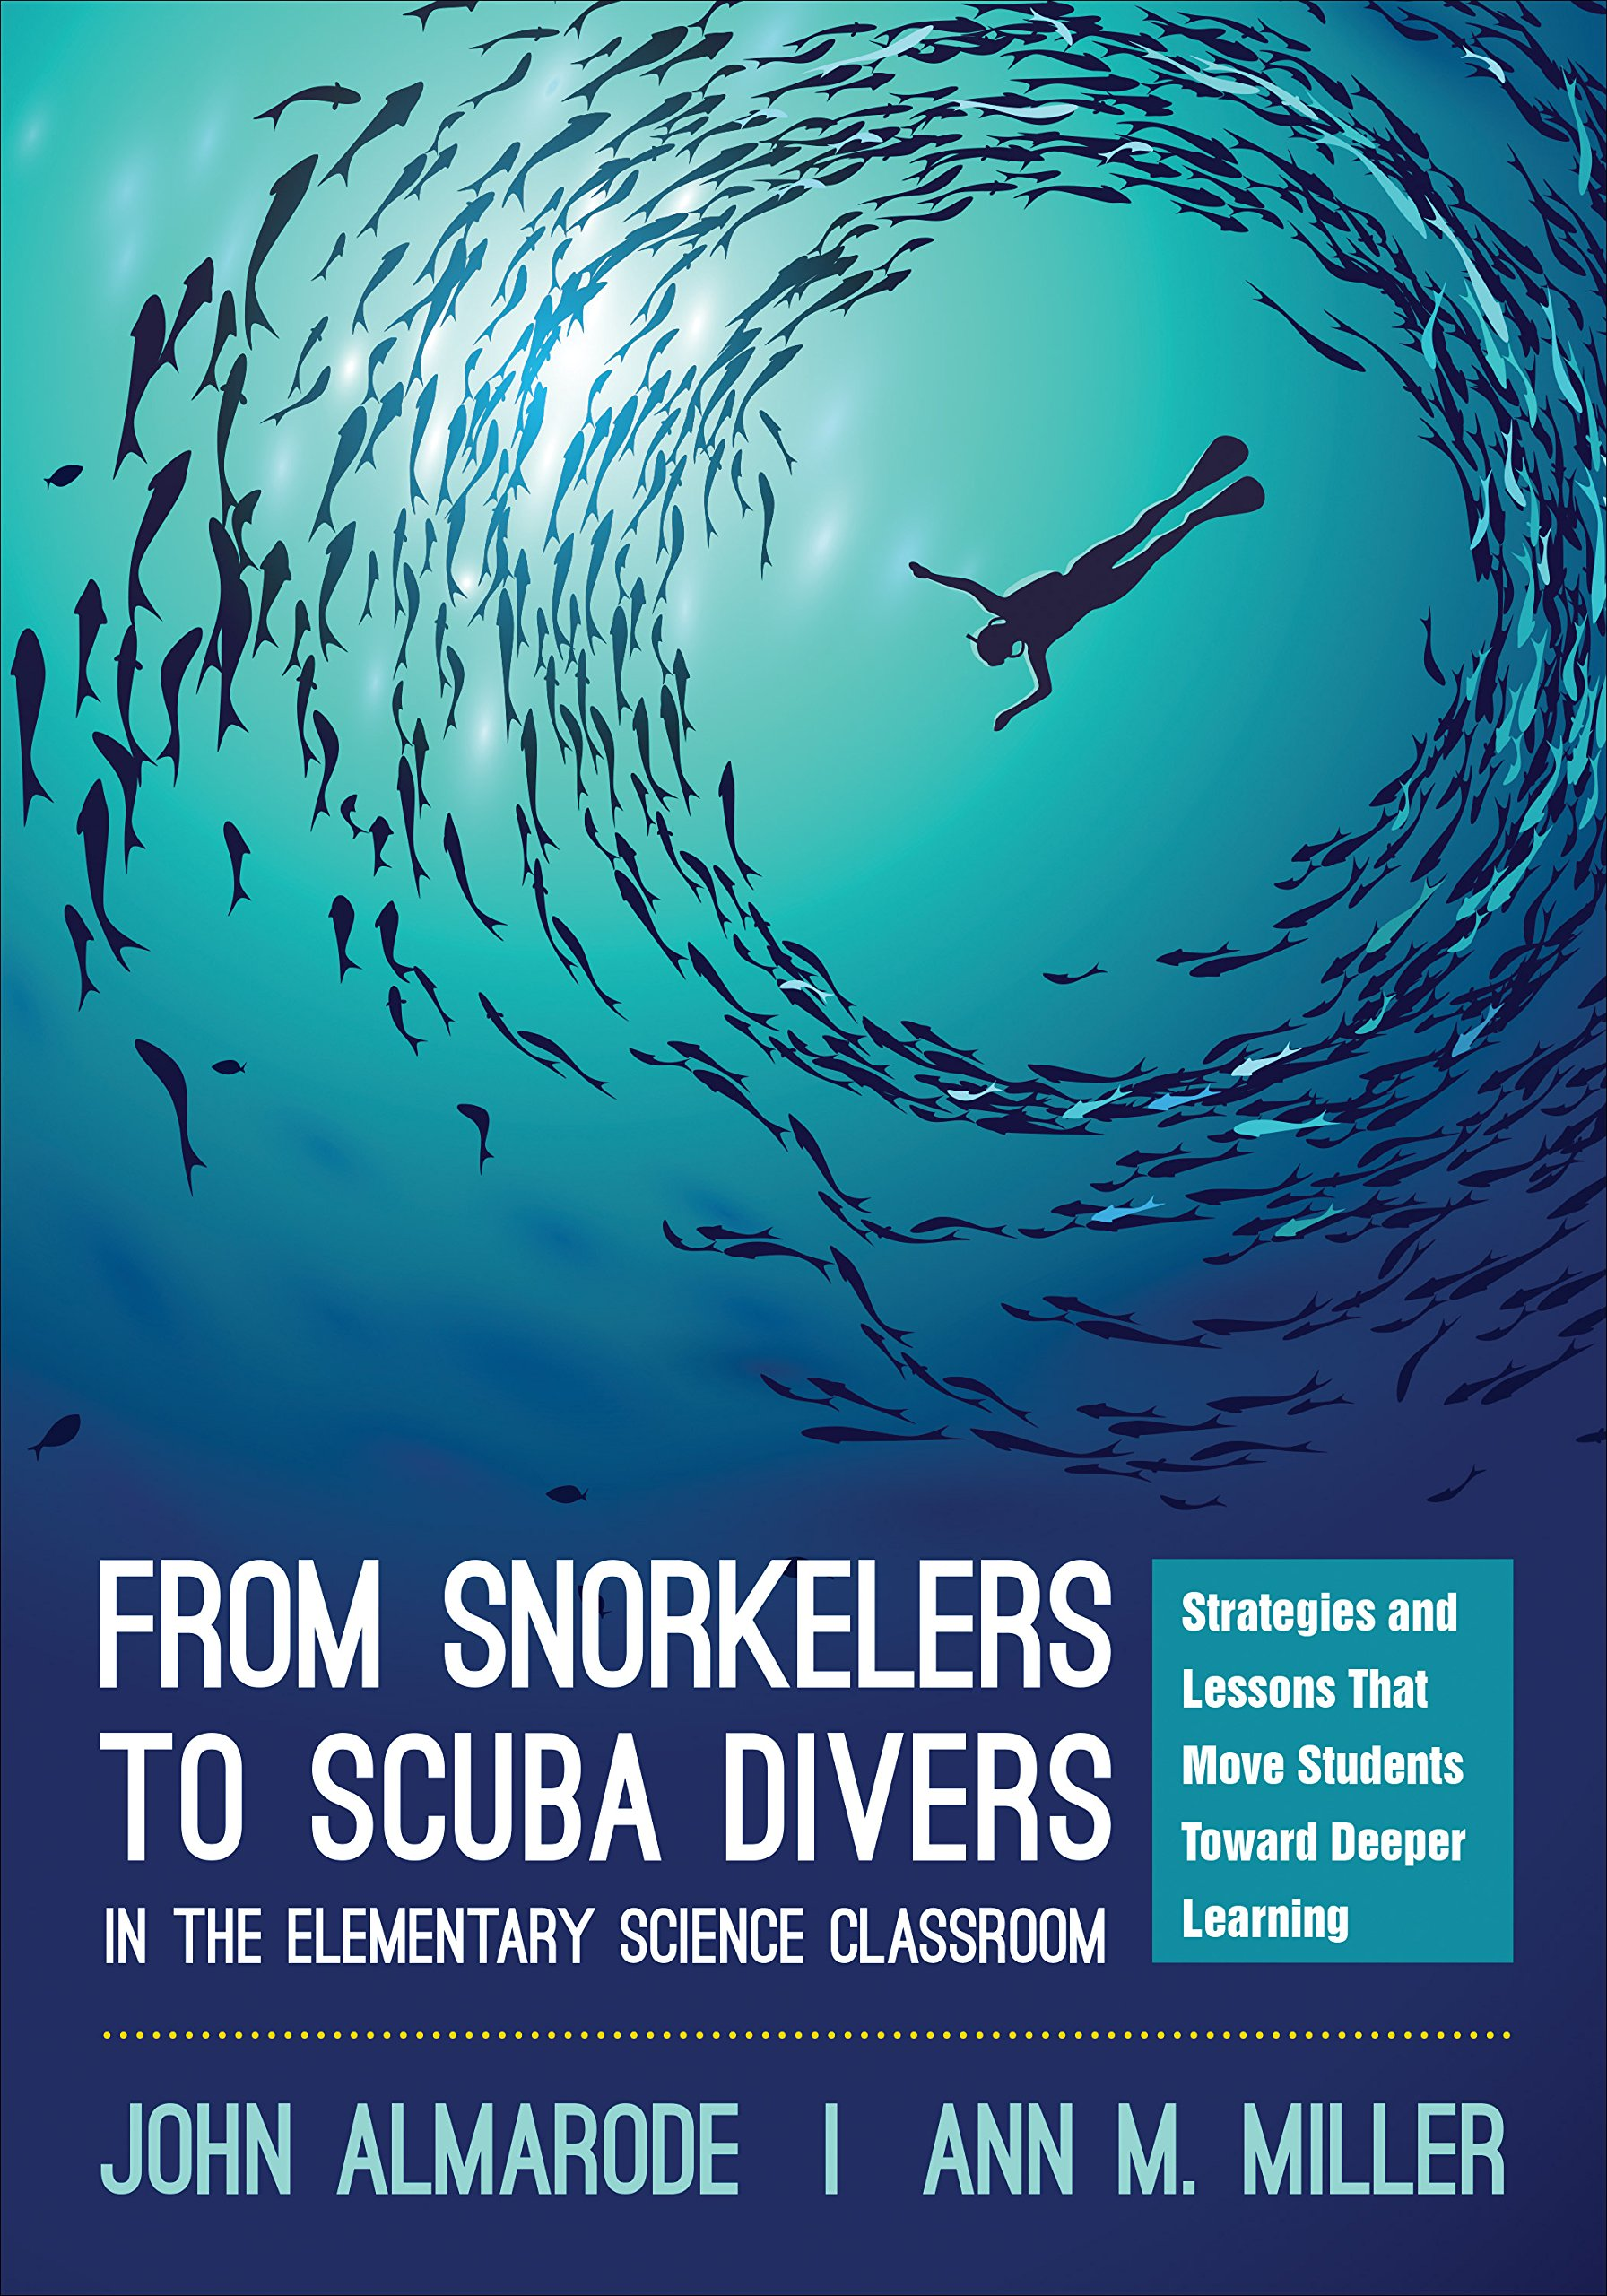 From Snorkelers to Scuba Divers in the Elementary Science Classroom: Strategies and Lessons That Move Students Toward Deeper Learning by Corwin